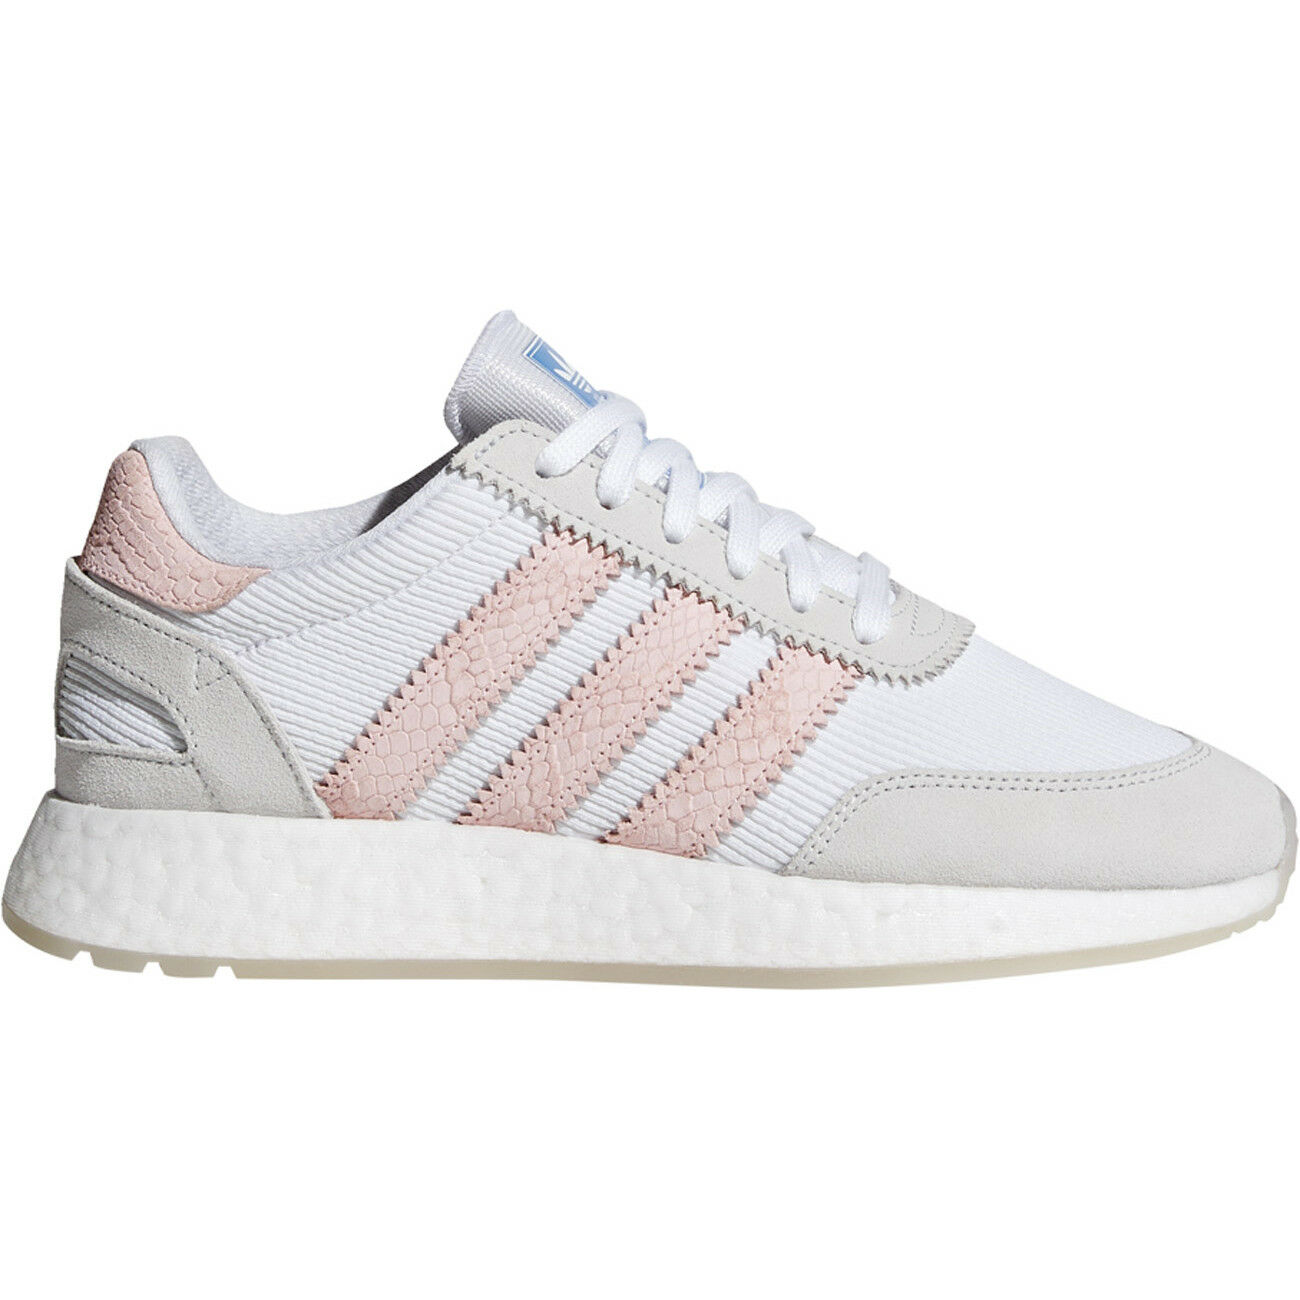 Adidas Originals baskets Femmes i-5923 W